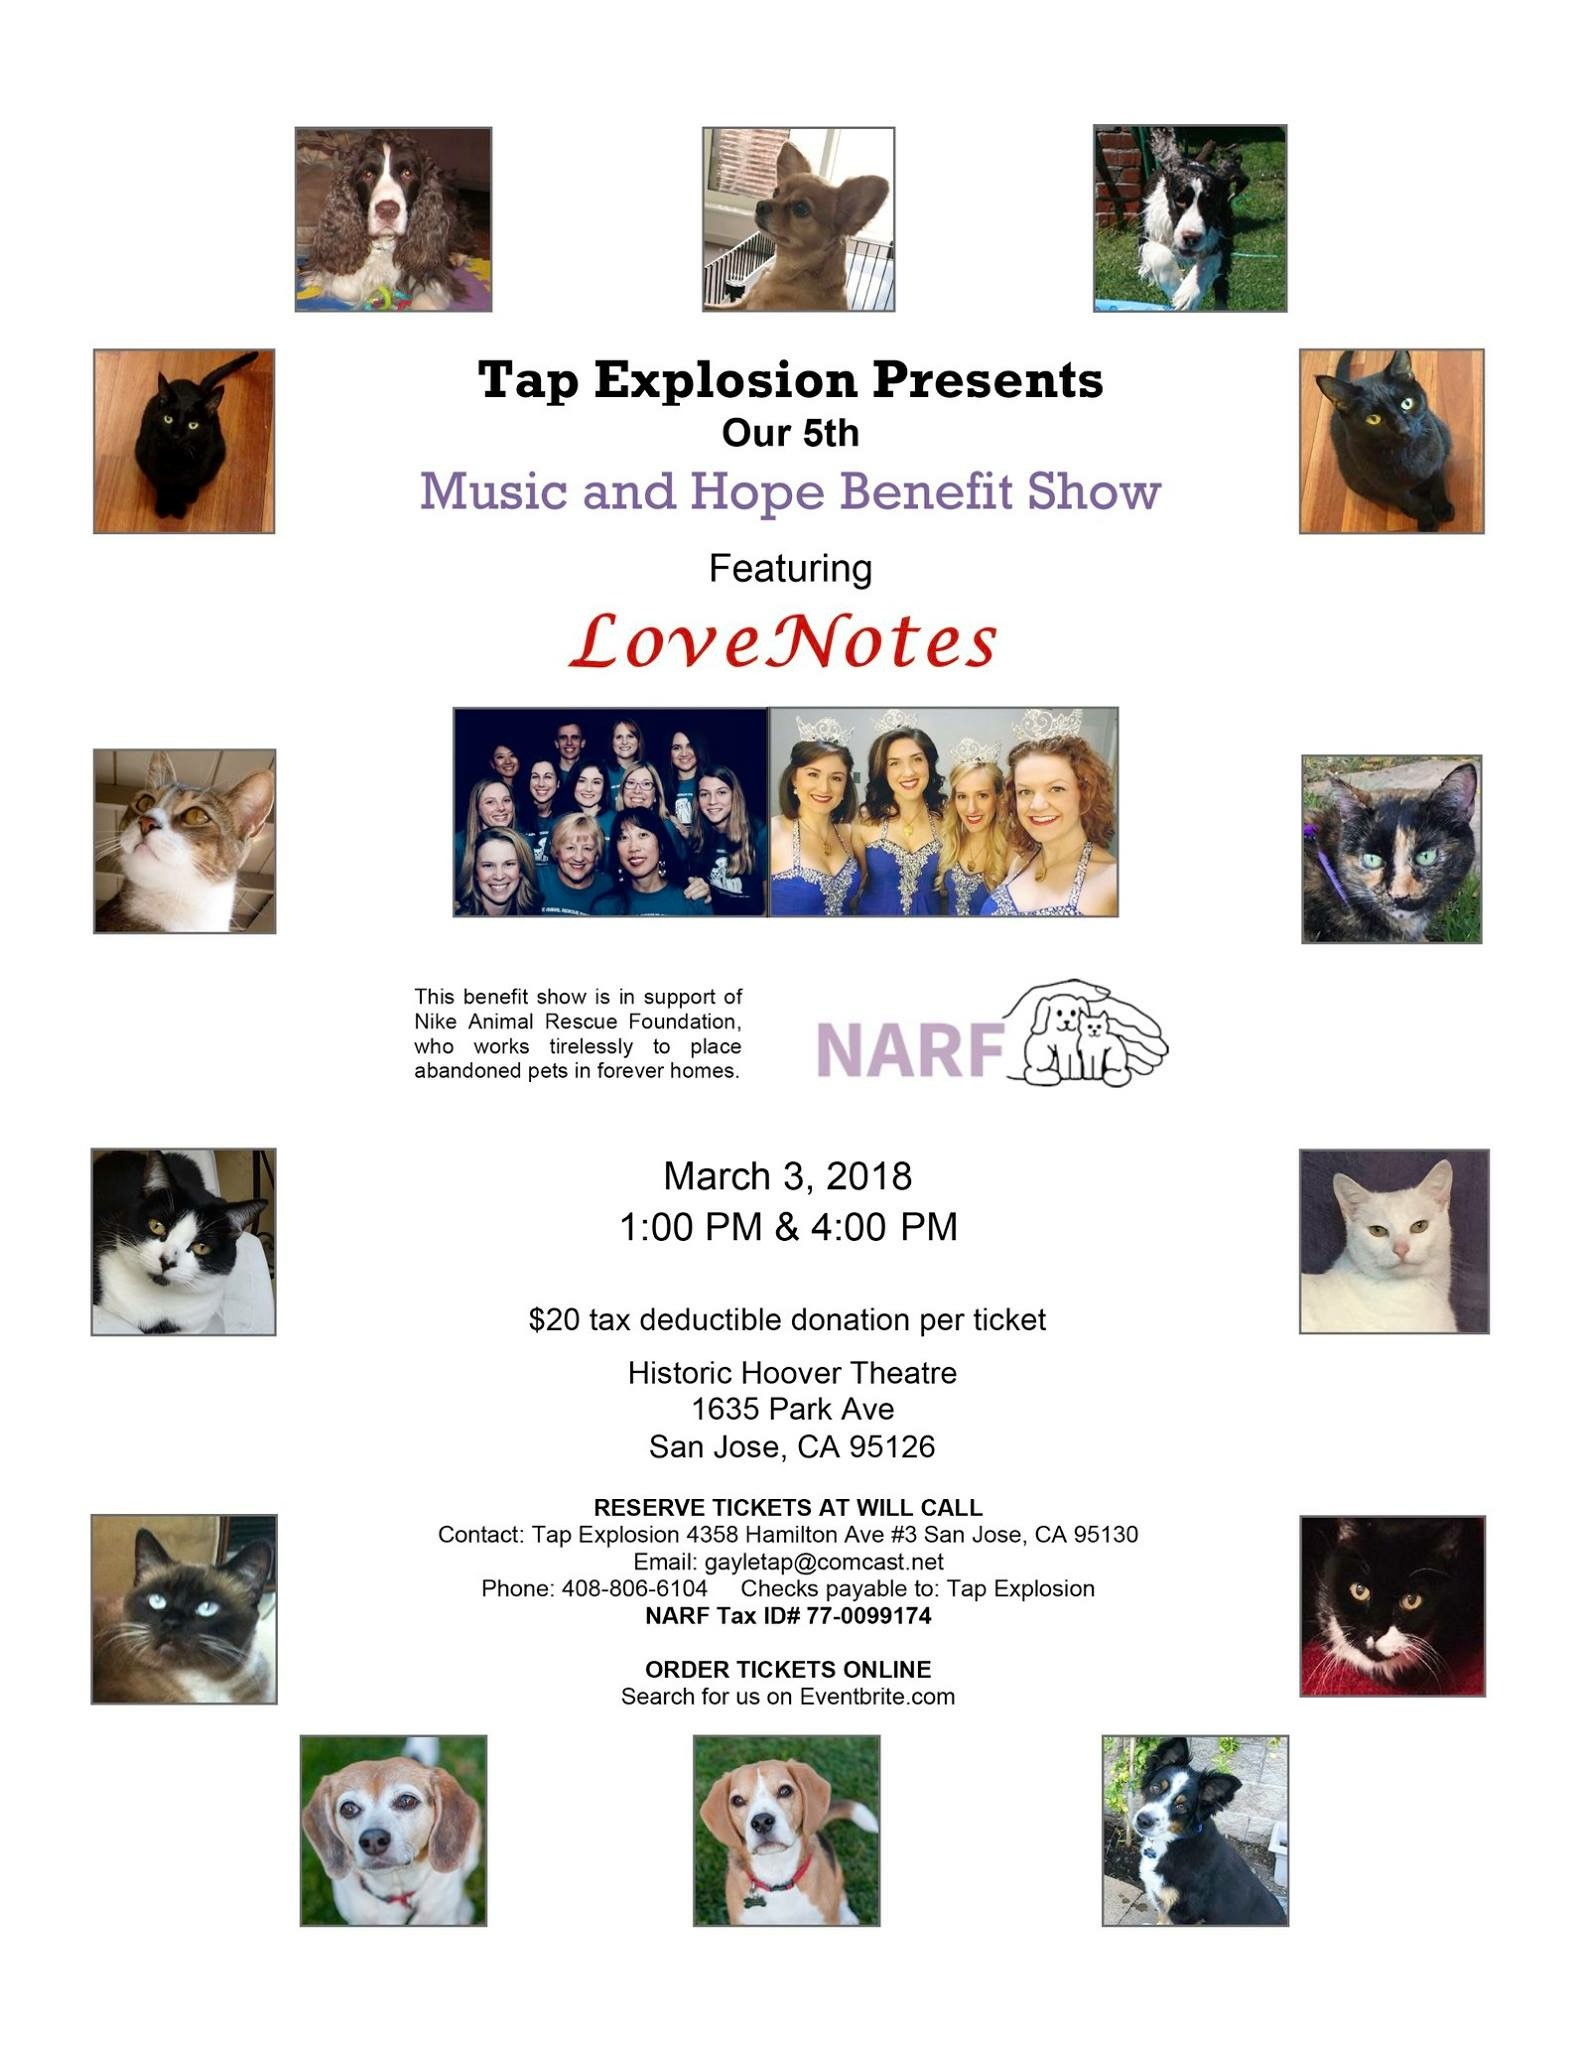 Music and Hope Benefit Show - Tap Explosion's 5th annual Music and Hope Benefit Show will feature performances from Tap Explosion, Roundhill Studios, and LoveNotes. This year's benefit show is in support of Nike Animal Rescue Foundation.